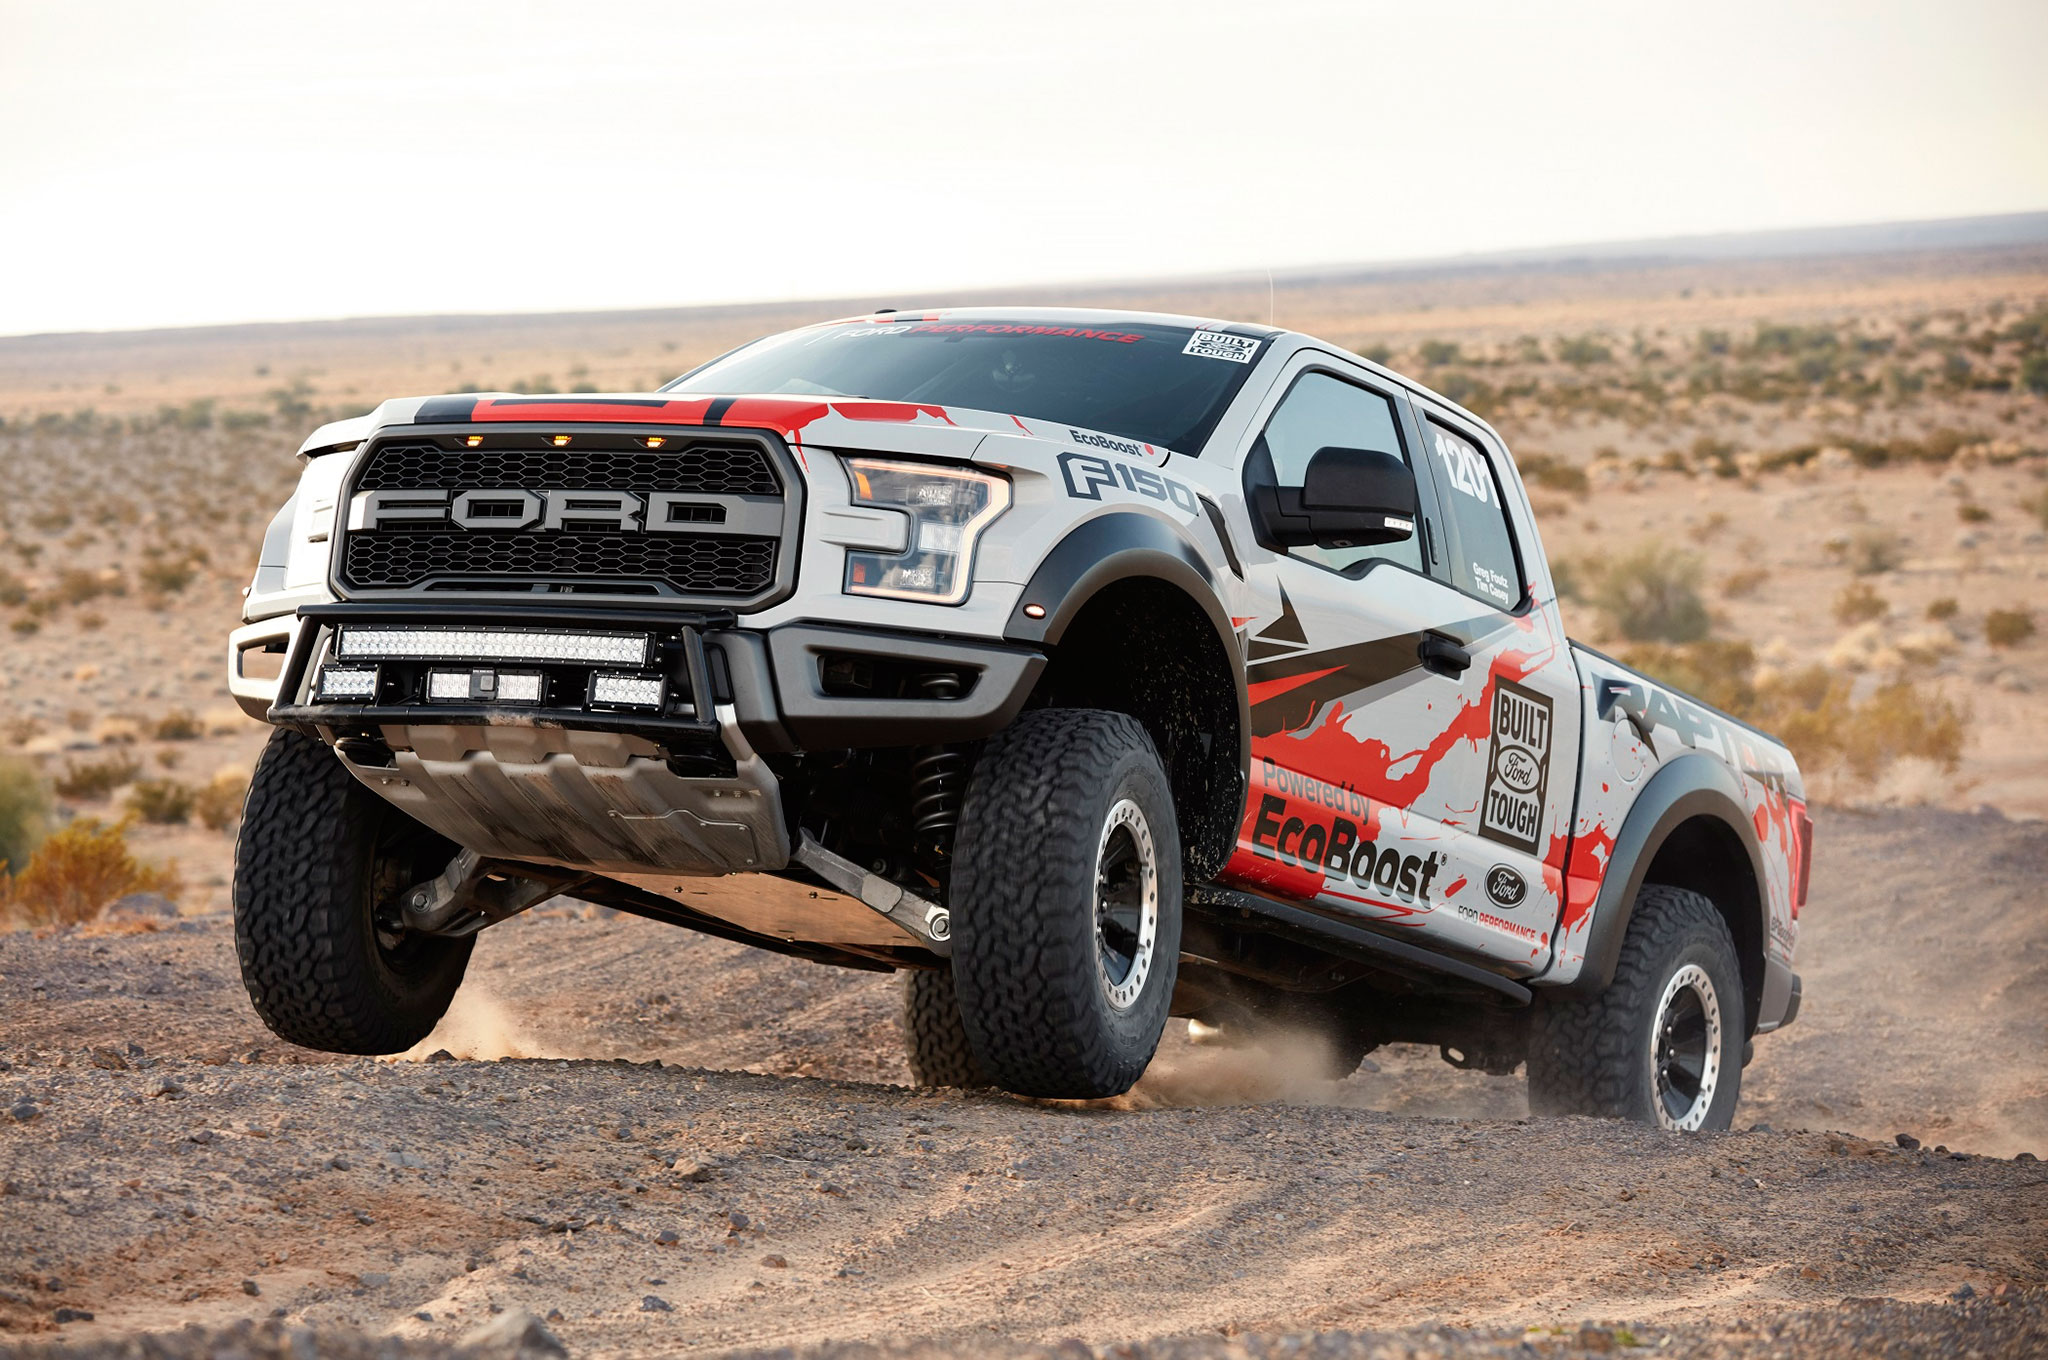 SEMA 2016: Stock Ford Raptor Ready for Baja 1000 | Automobile Magazine